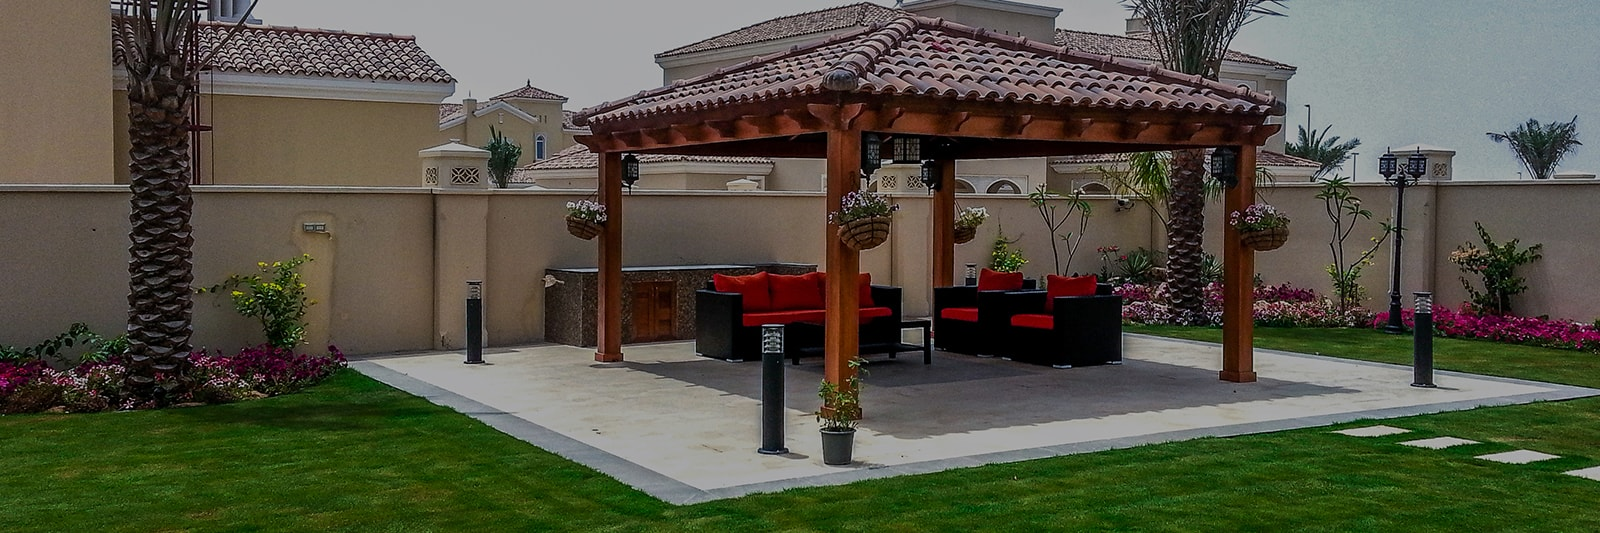 Landscaping designers swimming pool contractors in dubai - Swimming pool construction companies in uae ...